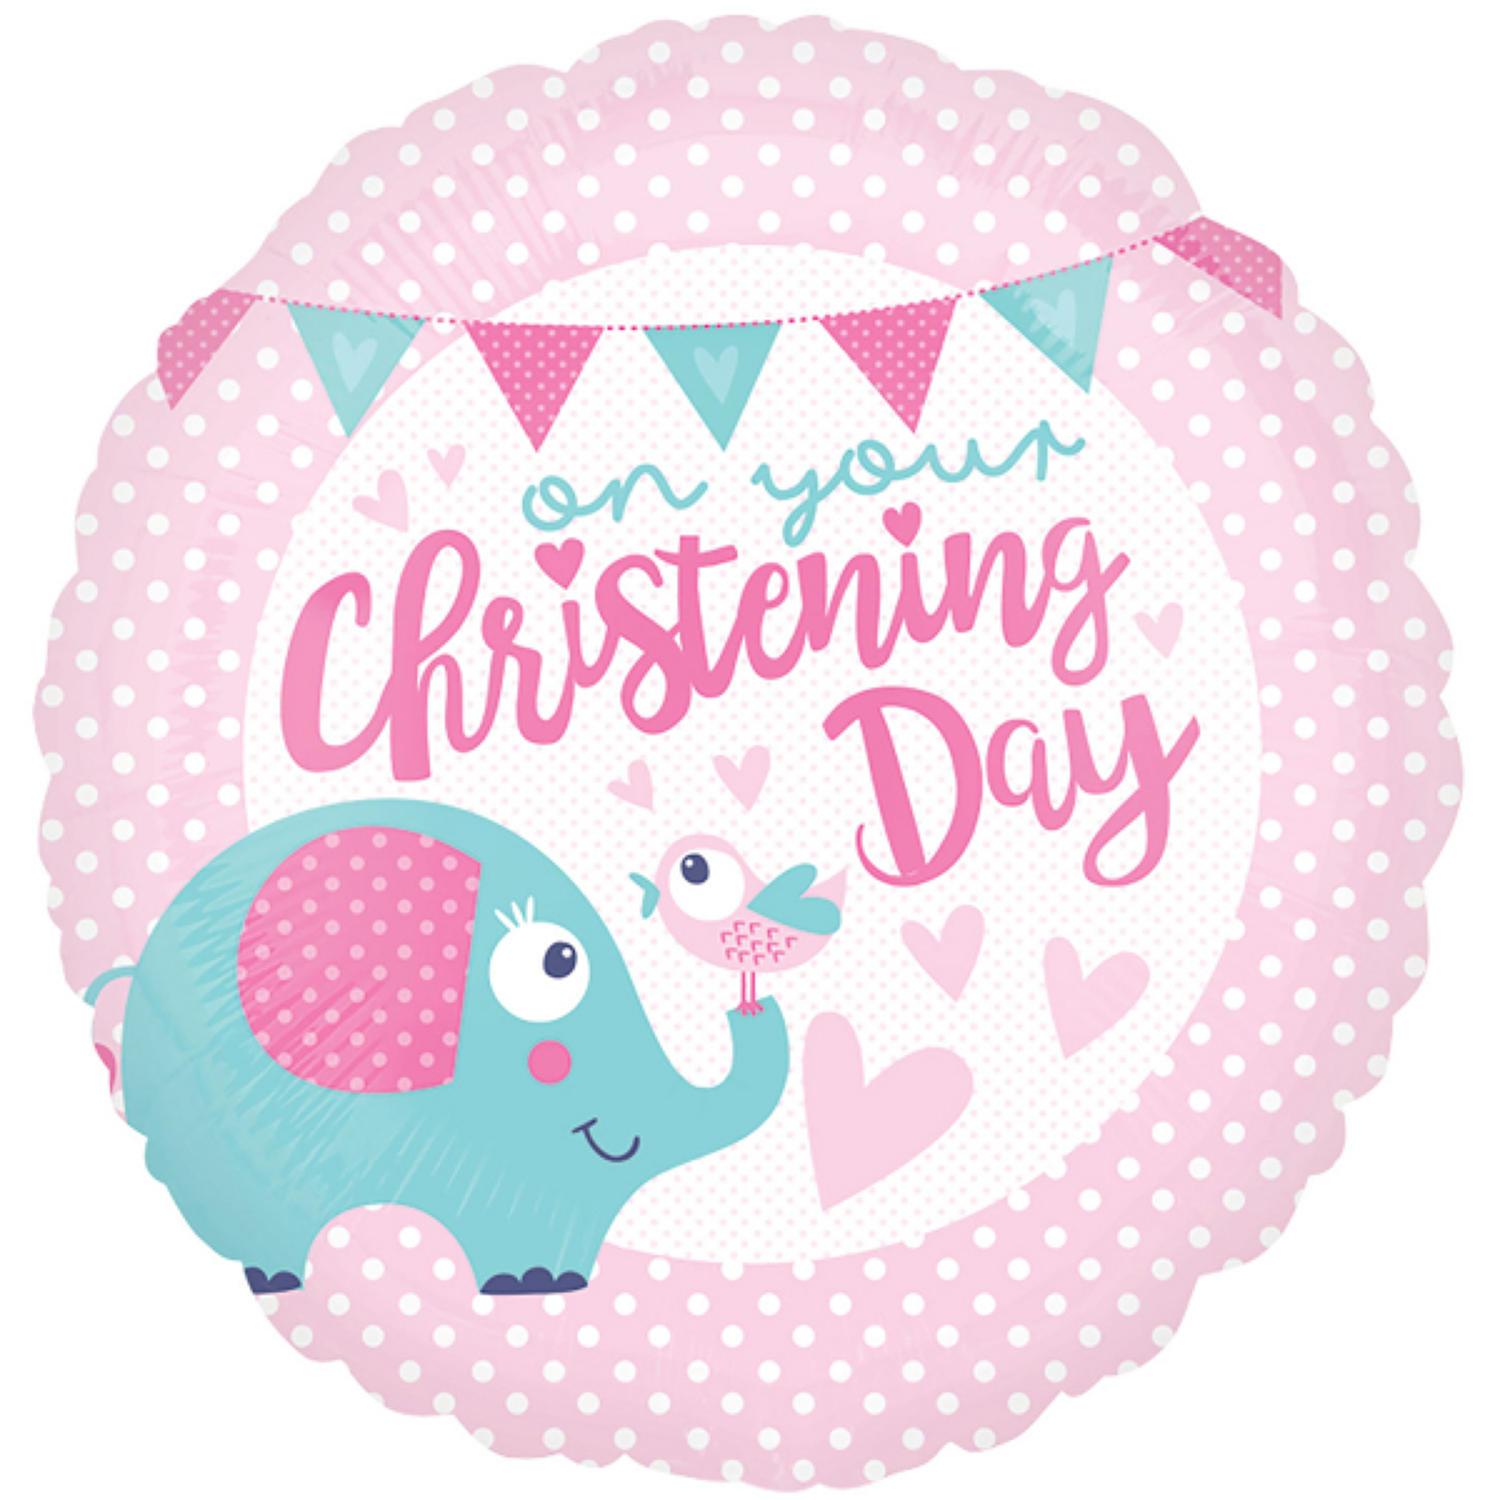 Christening Day pink foil balloon  sc 1 st  The Little Celebration Company & Christening Day pink foil balloon in Tableware and decor - Pink